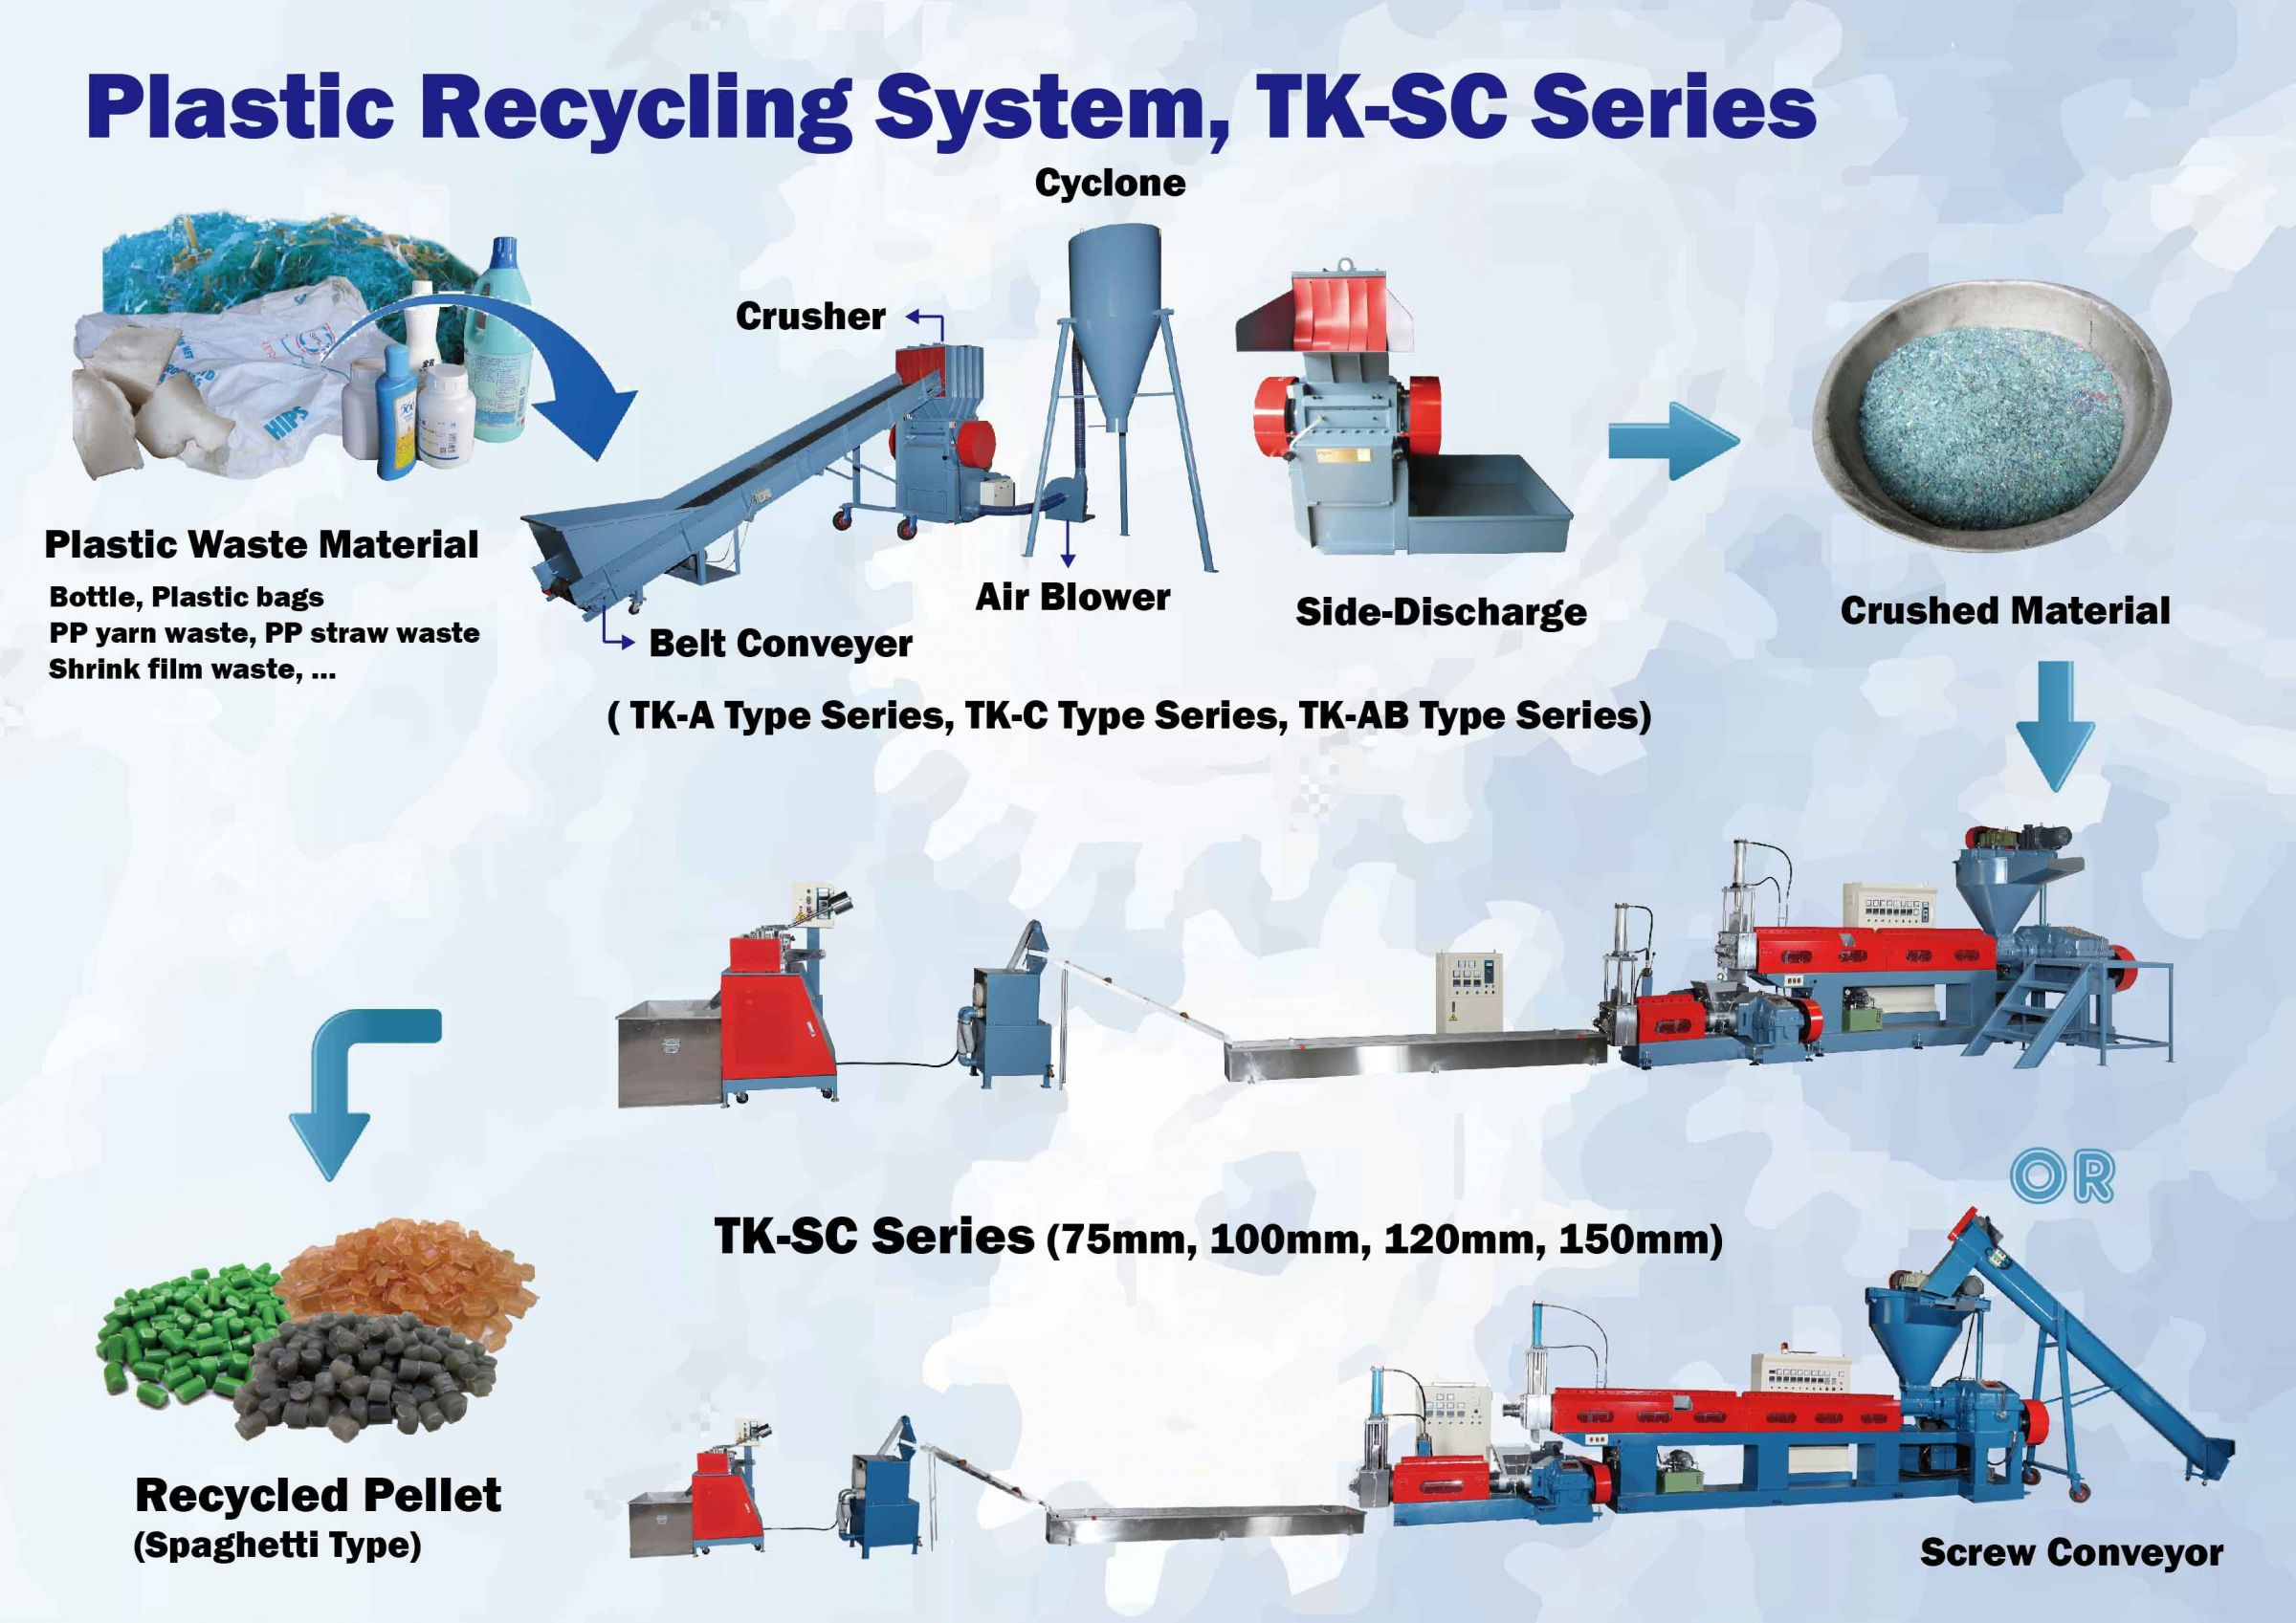 Flow Chart of Plastic Recycling System,TK-SC Series